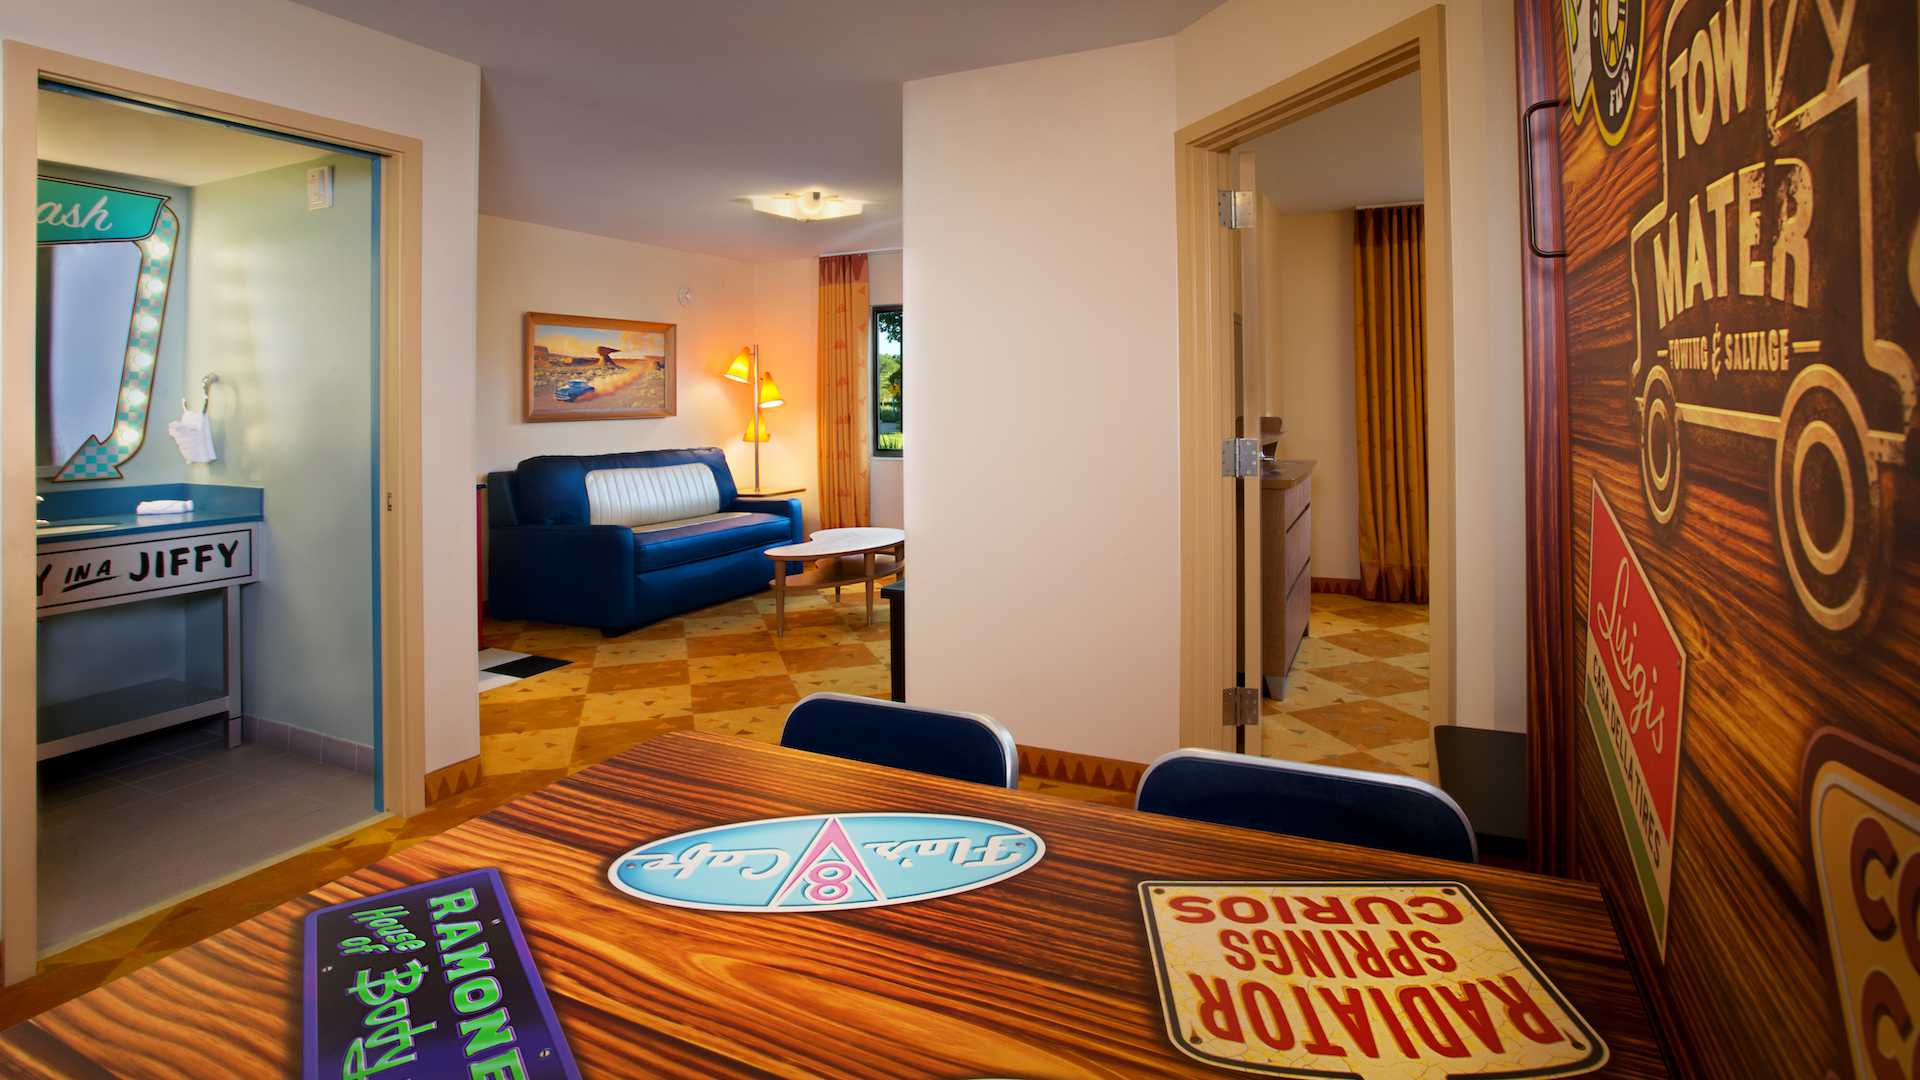 Art of Animation - Disney Resorts for Families of 5 or More